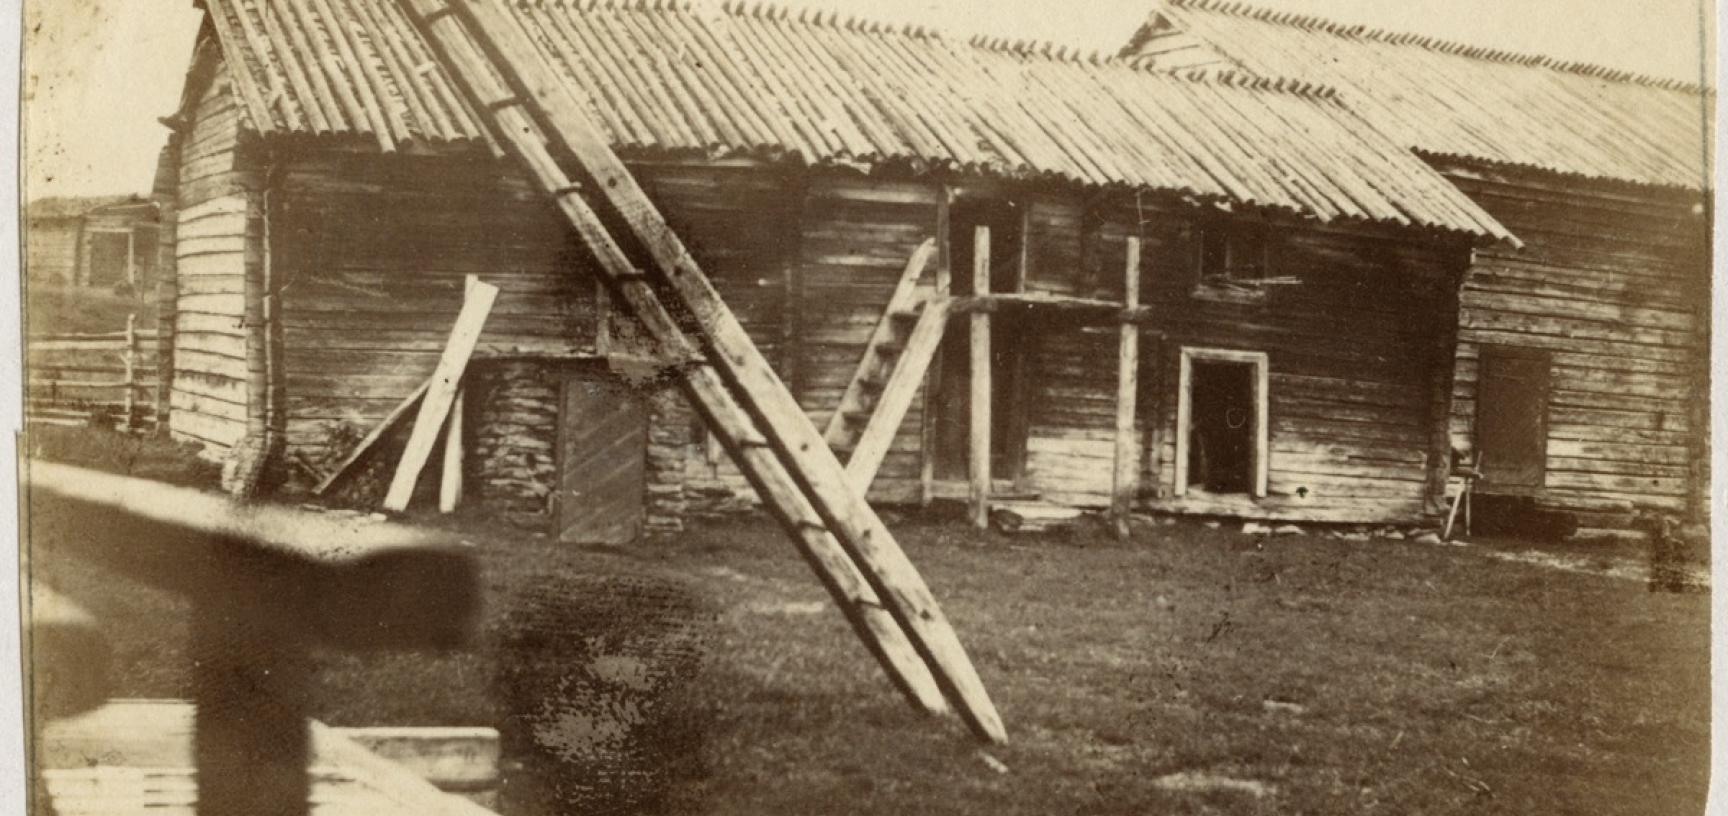 View of buildings at Sodankylä, captioned 'Finnish homestead', showing a storehouse for fuel and loft containing winter clothing, etc. 'One of the peculiarities of Sodankylä is that, though it is a small village collectively, to see it all you have to do